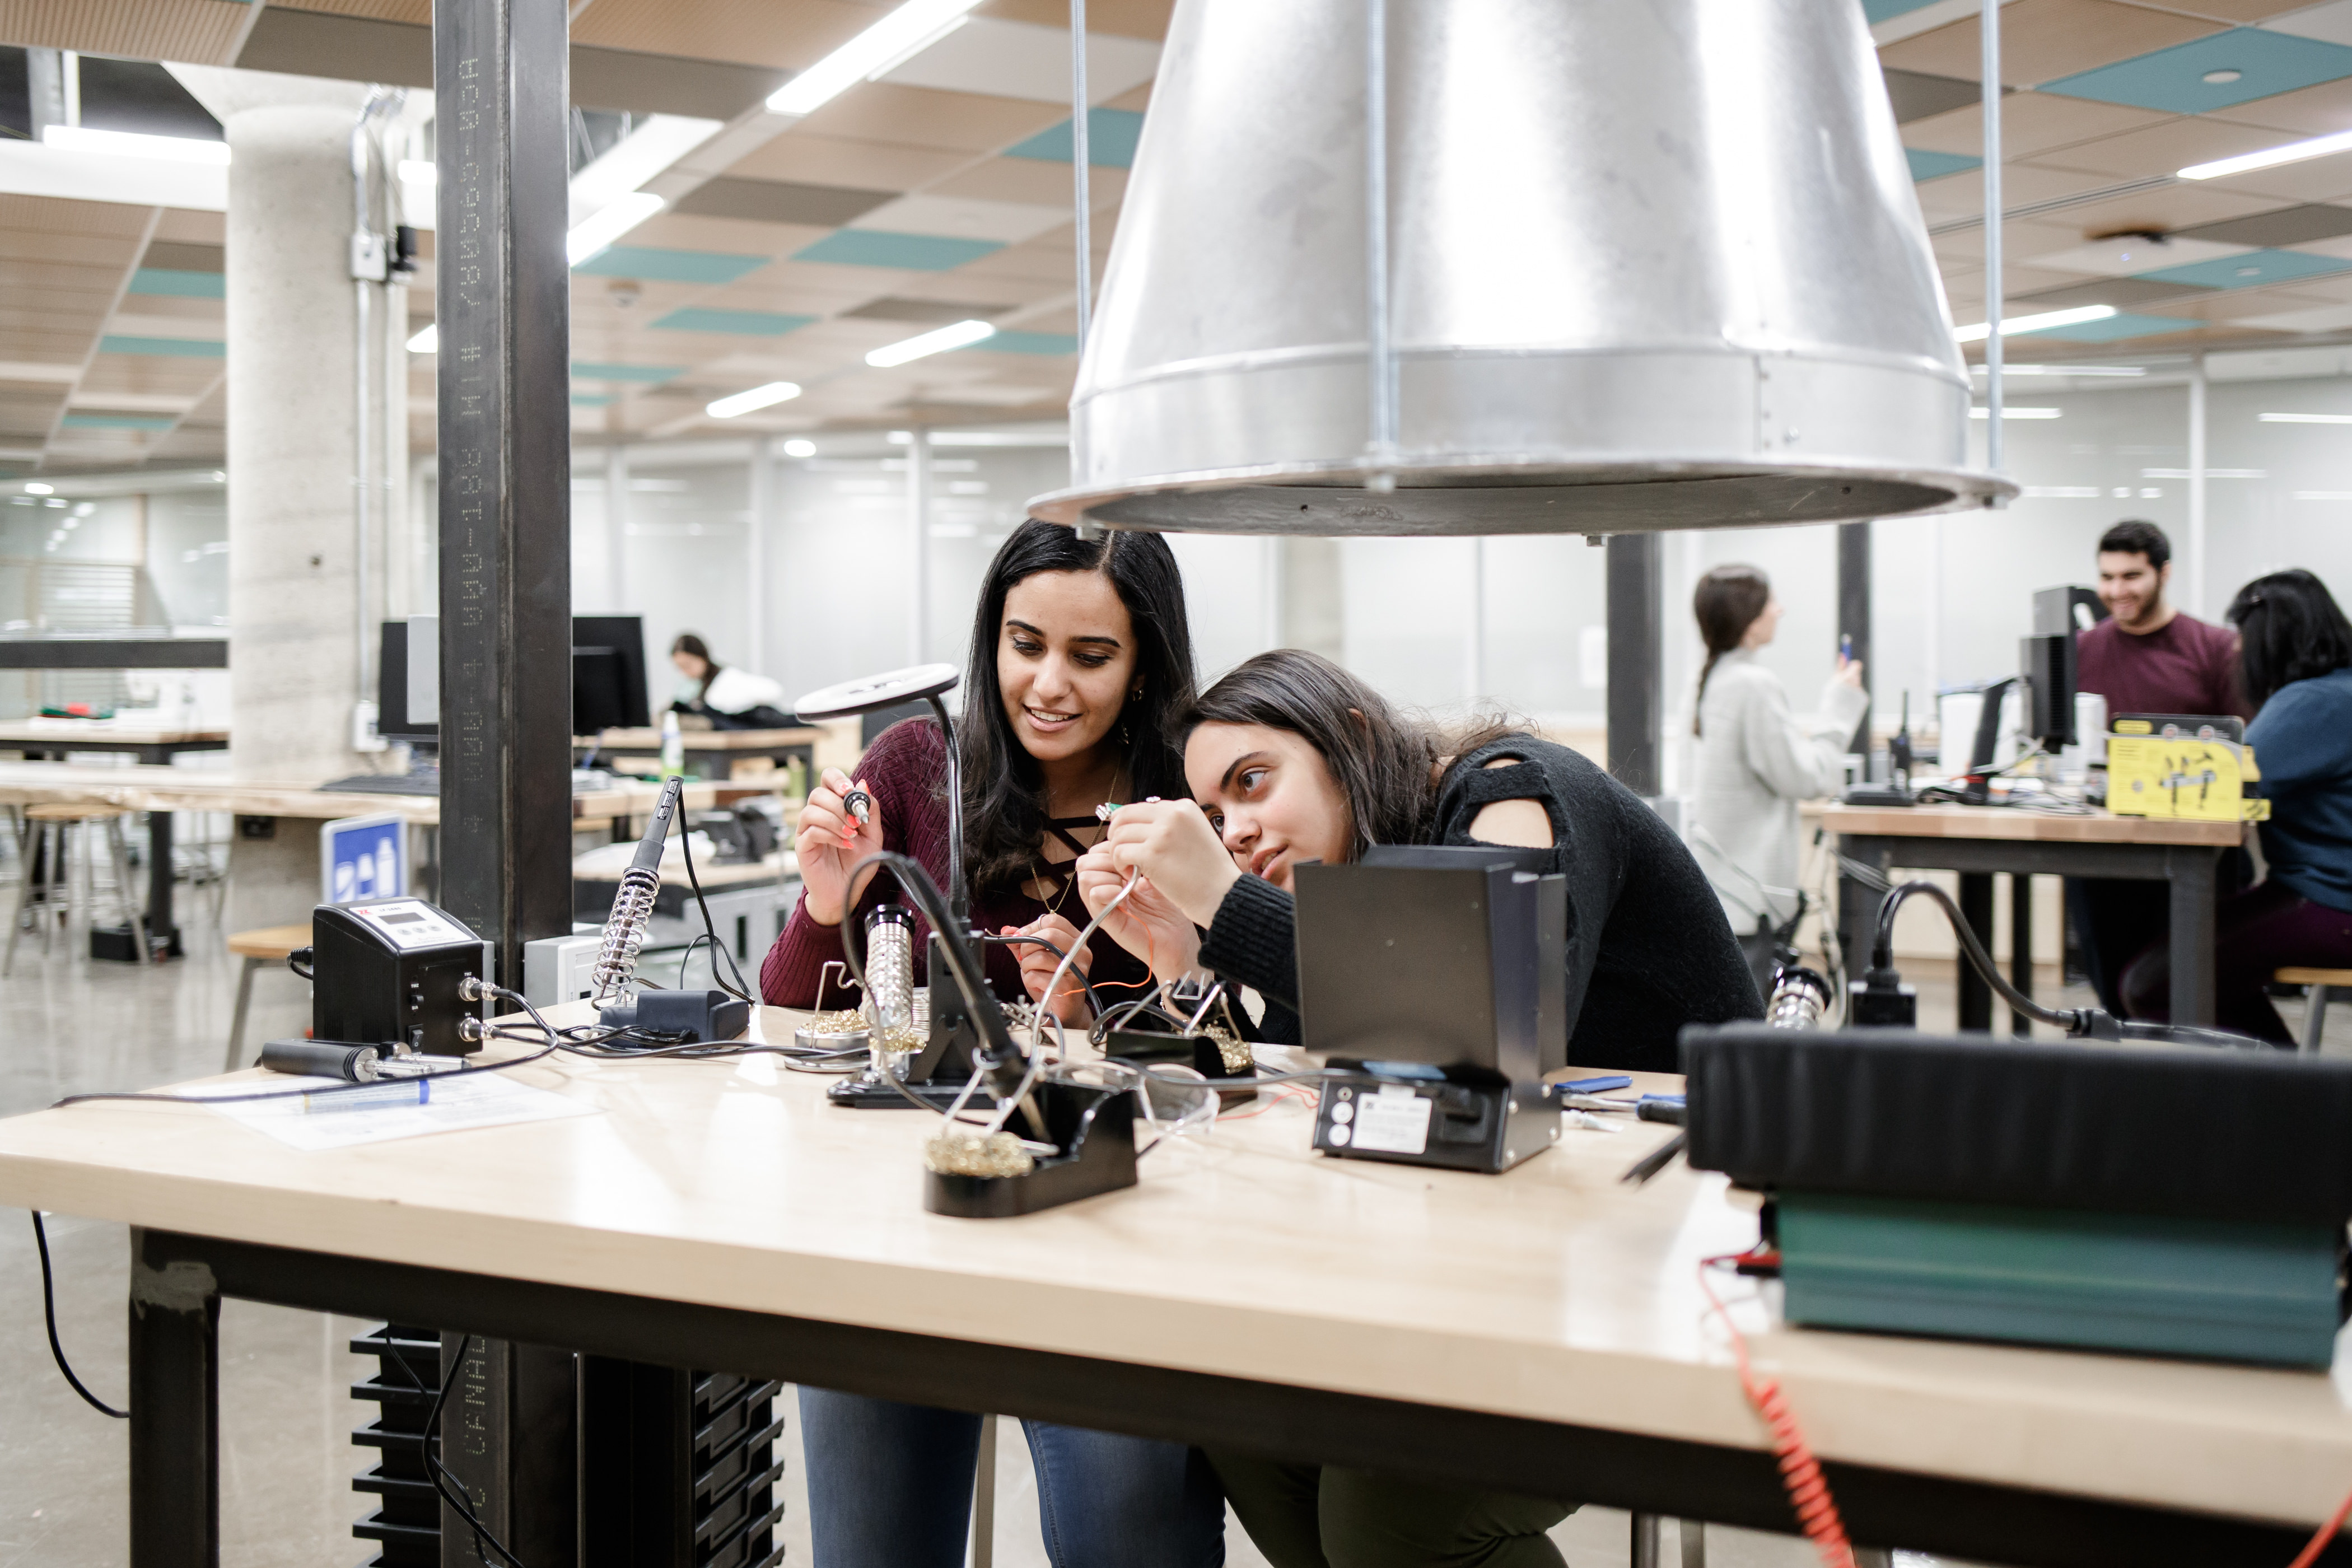 Photos of students using the tools and resources in the Thode Makerspace, which is located in the H.G. Thode Library of Science & Engineering.